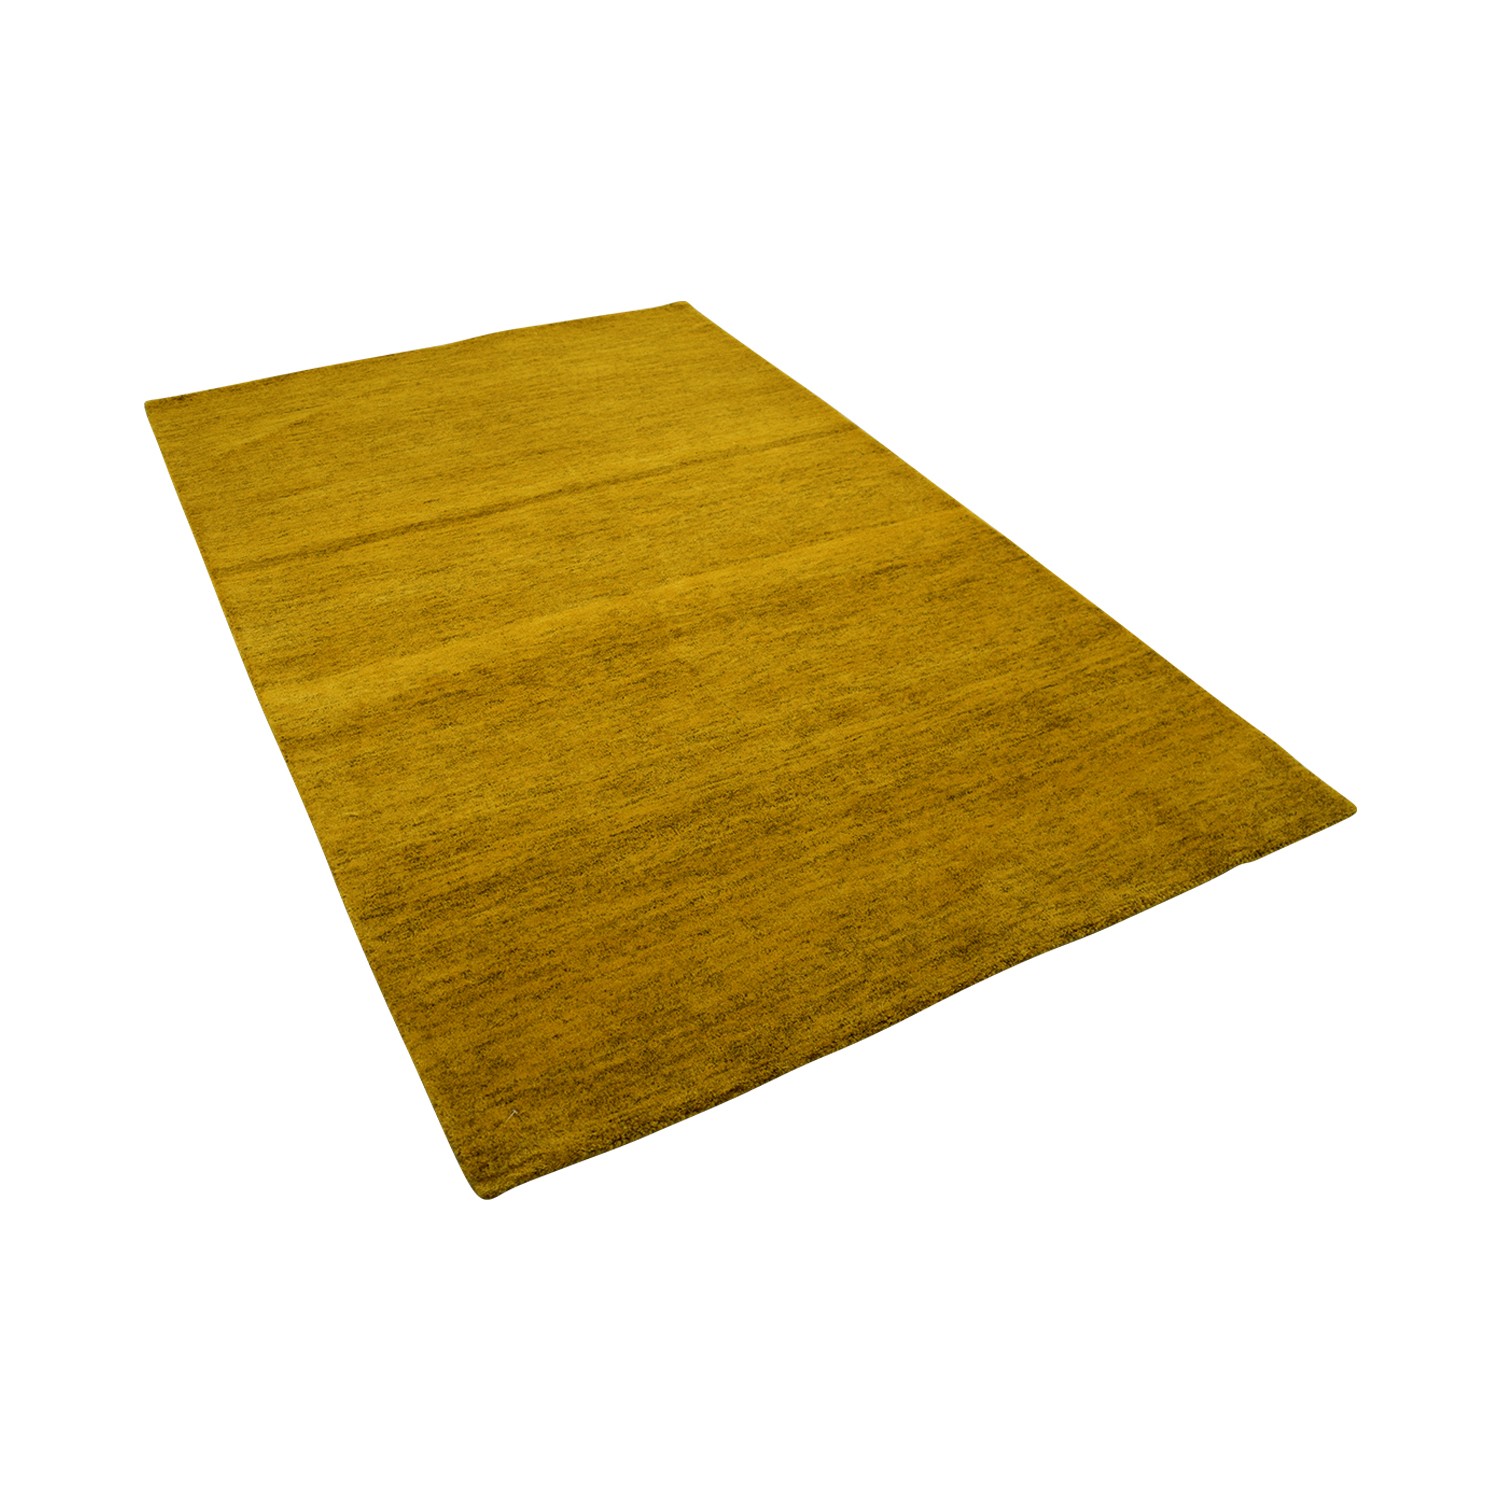 Obeetee Obeetee Yellow Rug for sale